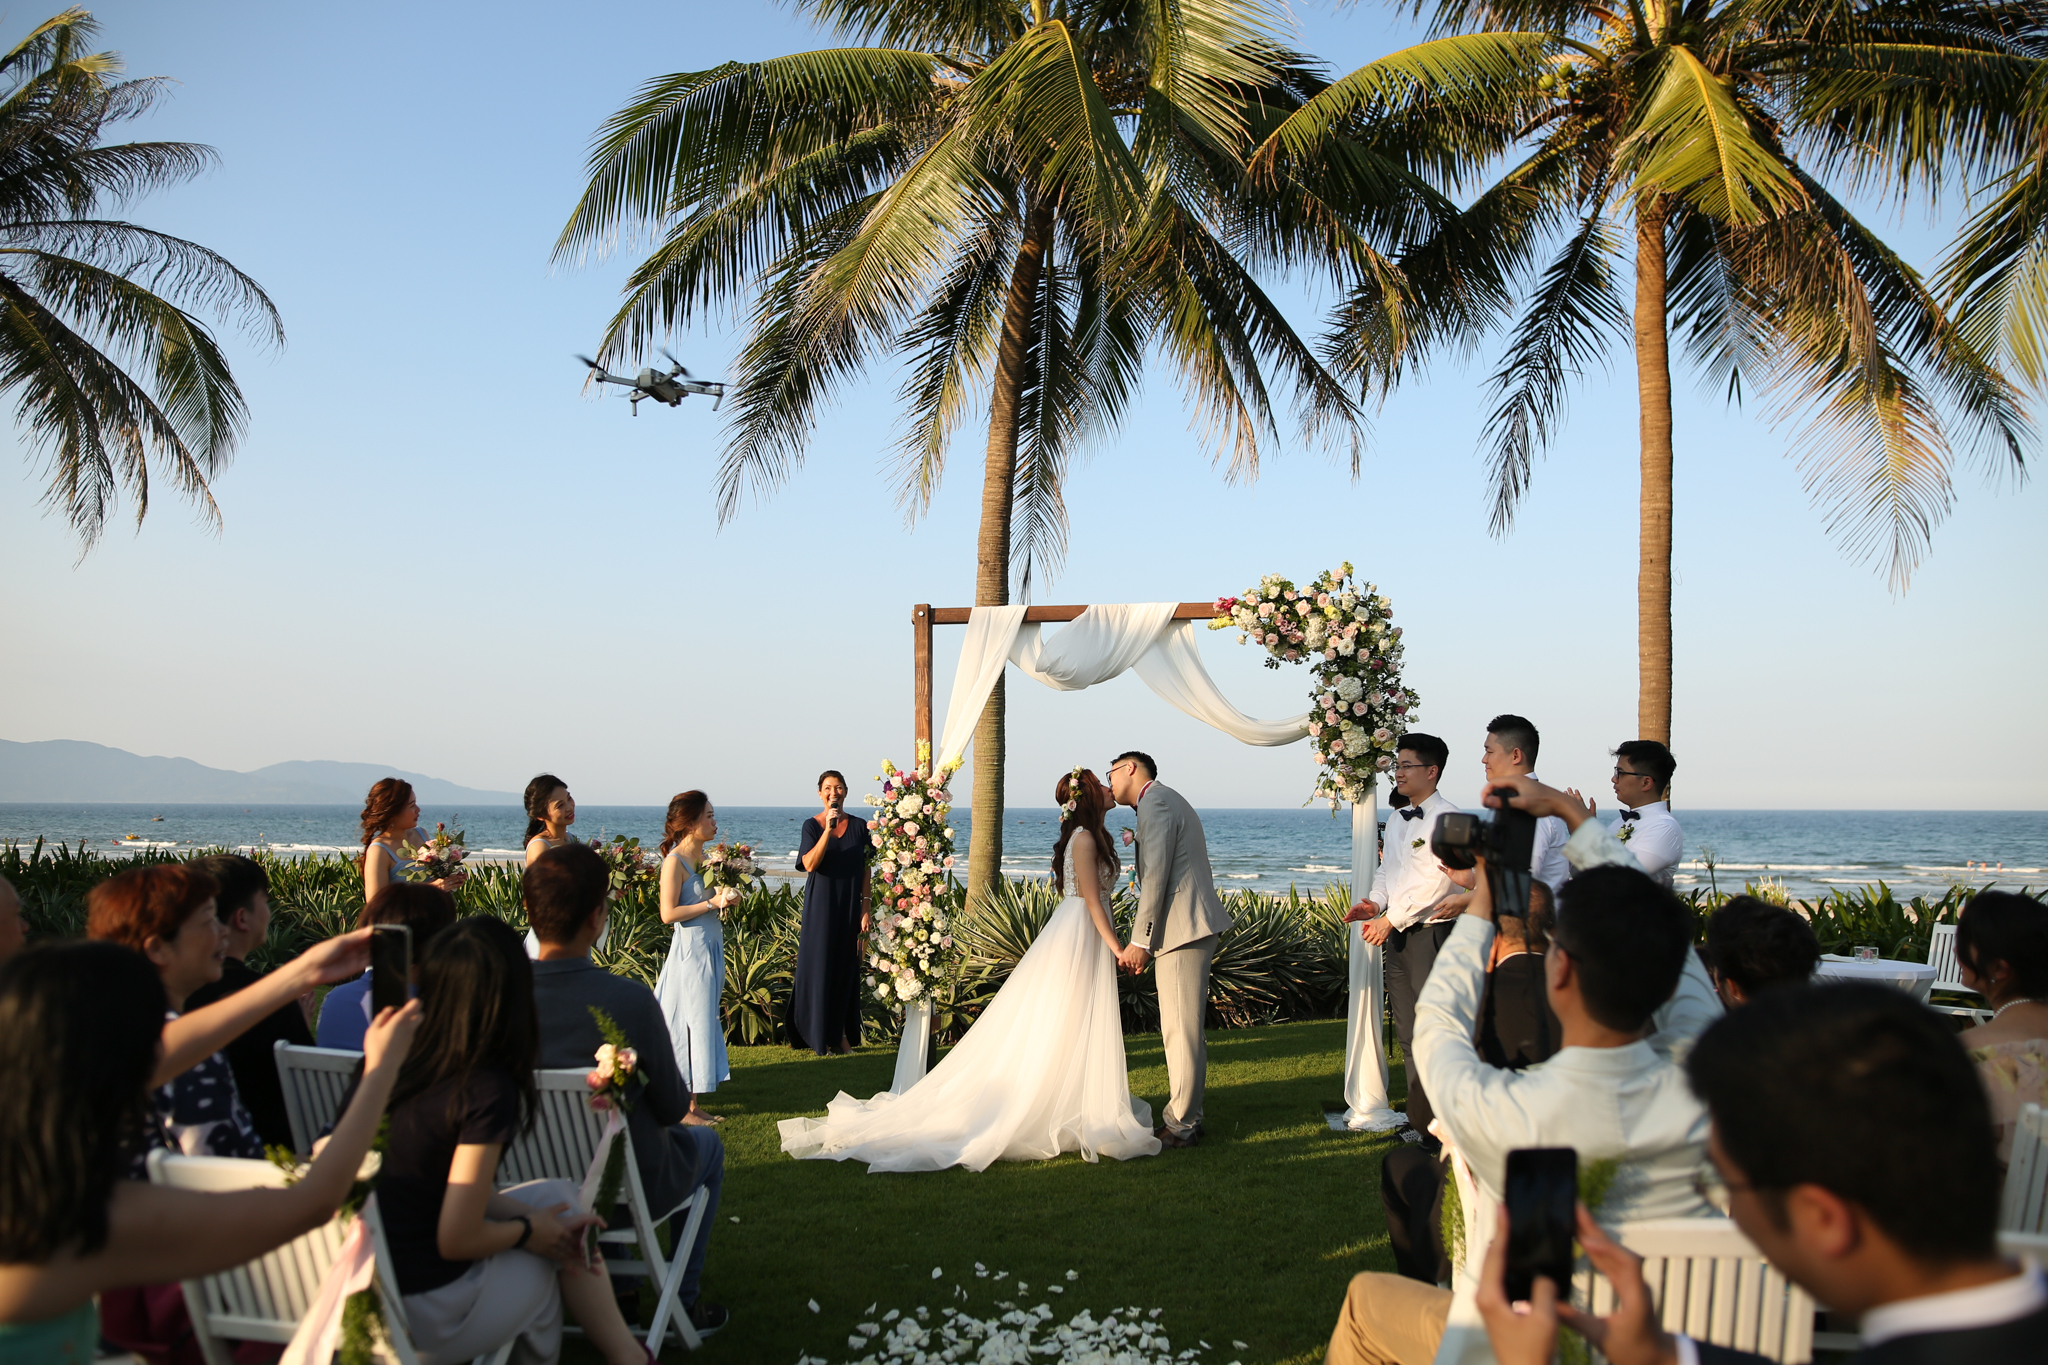 Wedding Hyatt Destination Wedding Celebr